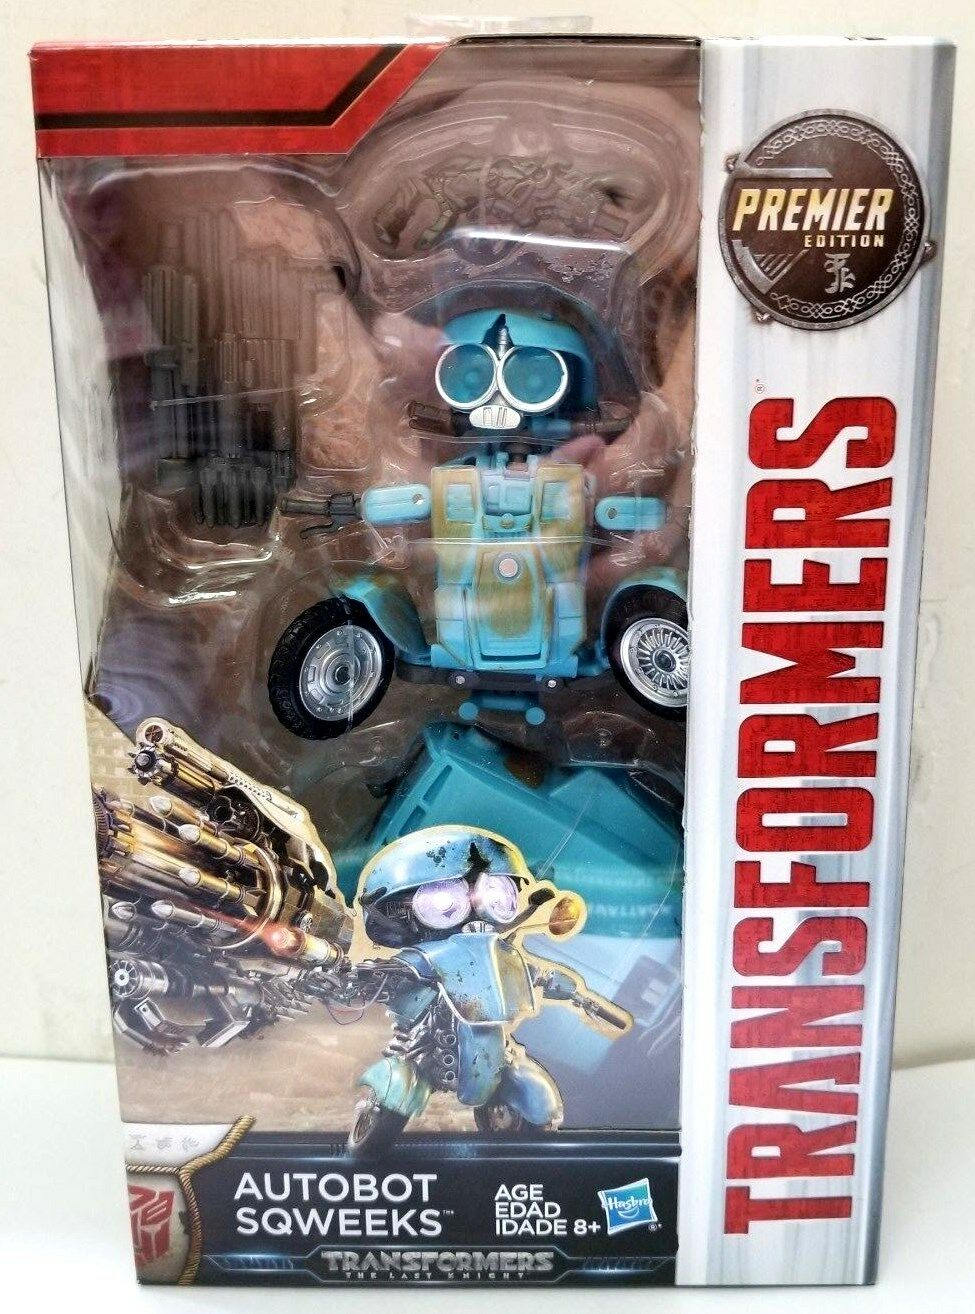 HASBRO HASBRO HASBRO TRANSFORMERS MOVIE 5 THE LAST KNIGHT SQWEEKS Premier Edition 0314b7